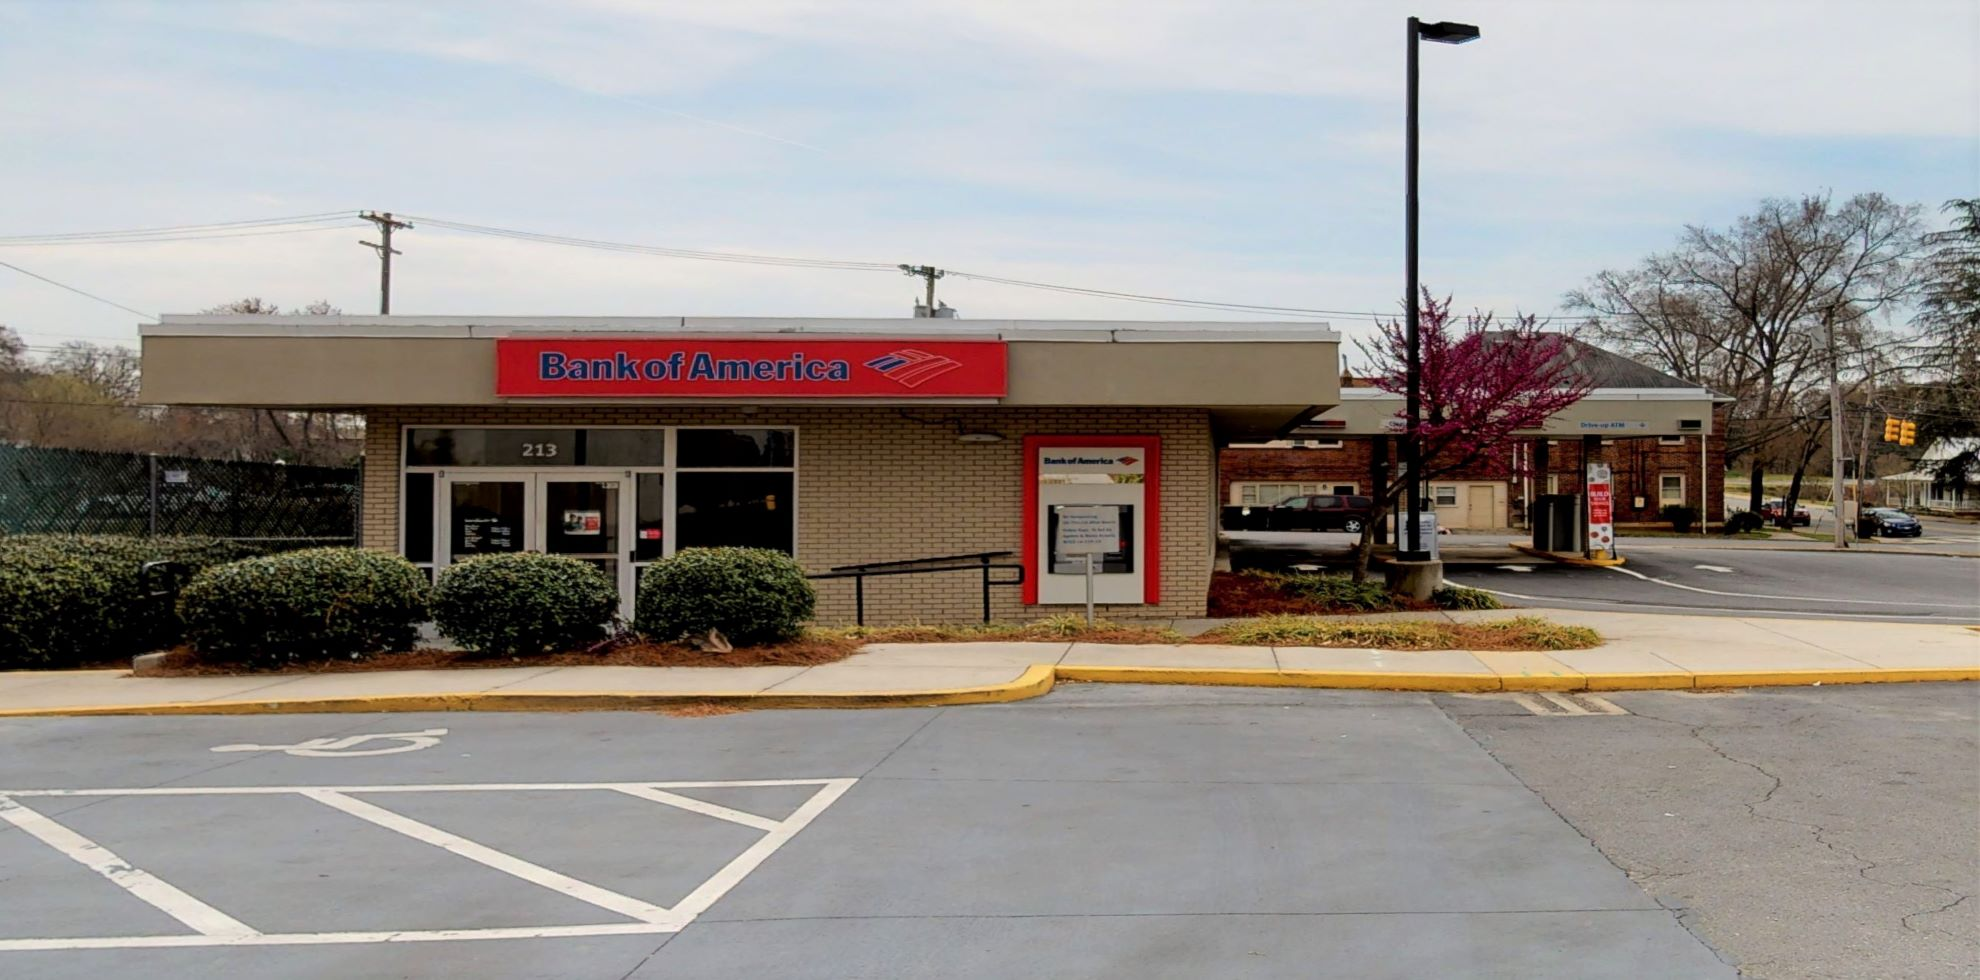 Bank of America financial center with drive-thru ATM and teller | 213 S Aspen St, Lincolnton, NC 28092